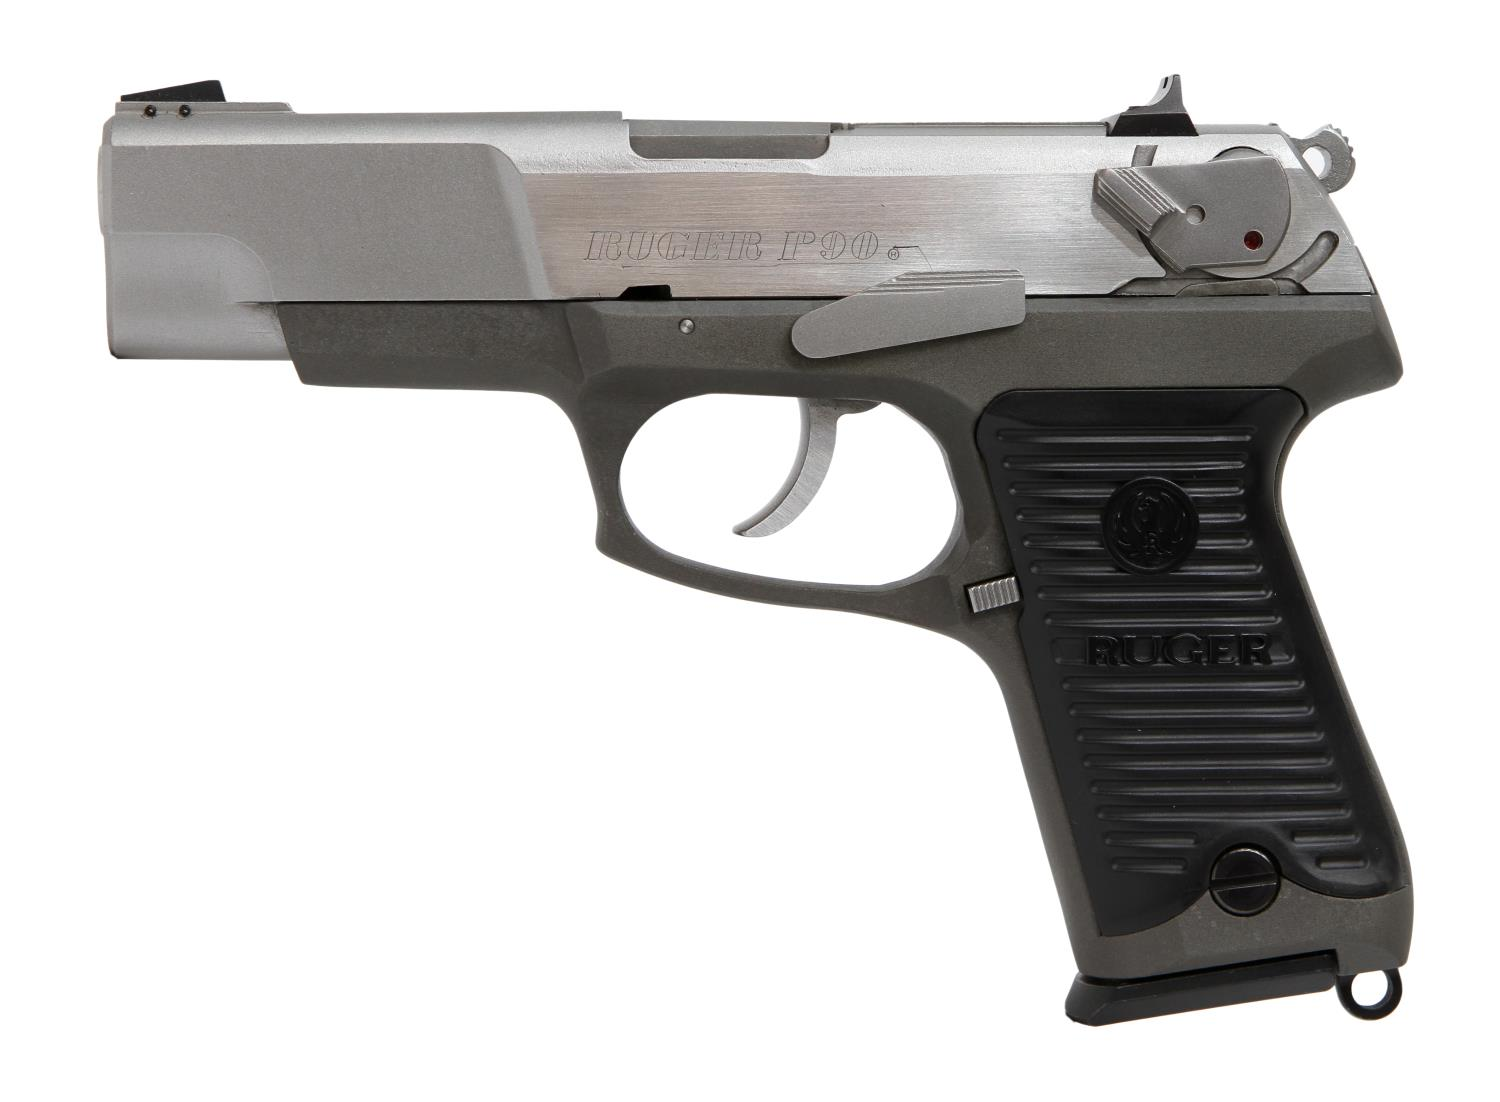 Ruger P90 Stainless 45acp Pistol